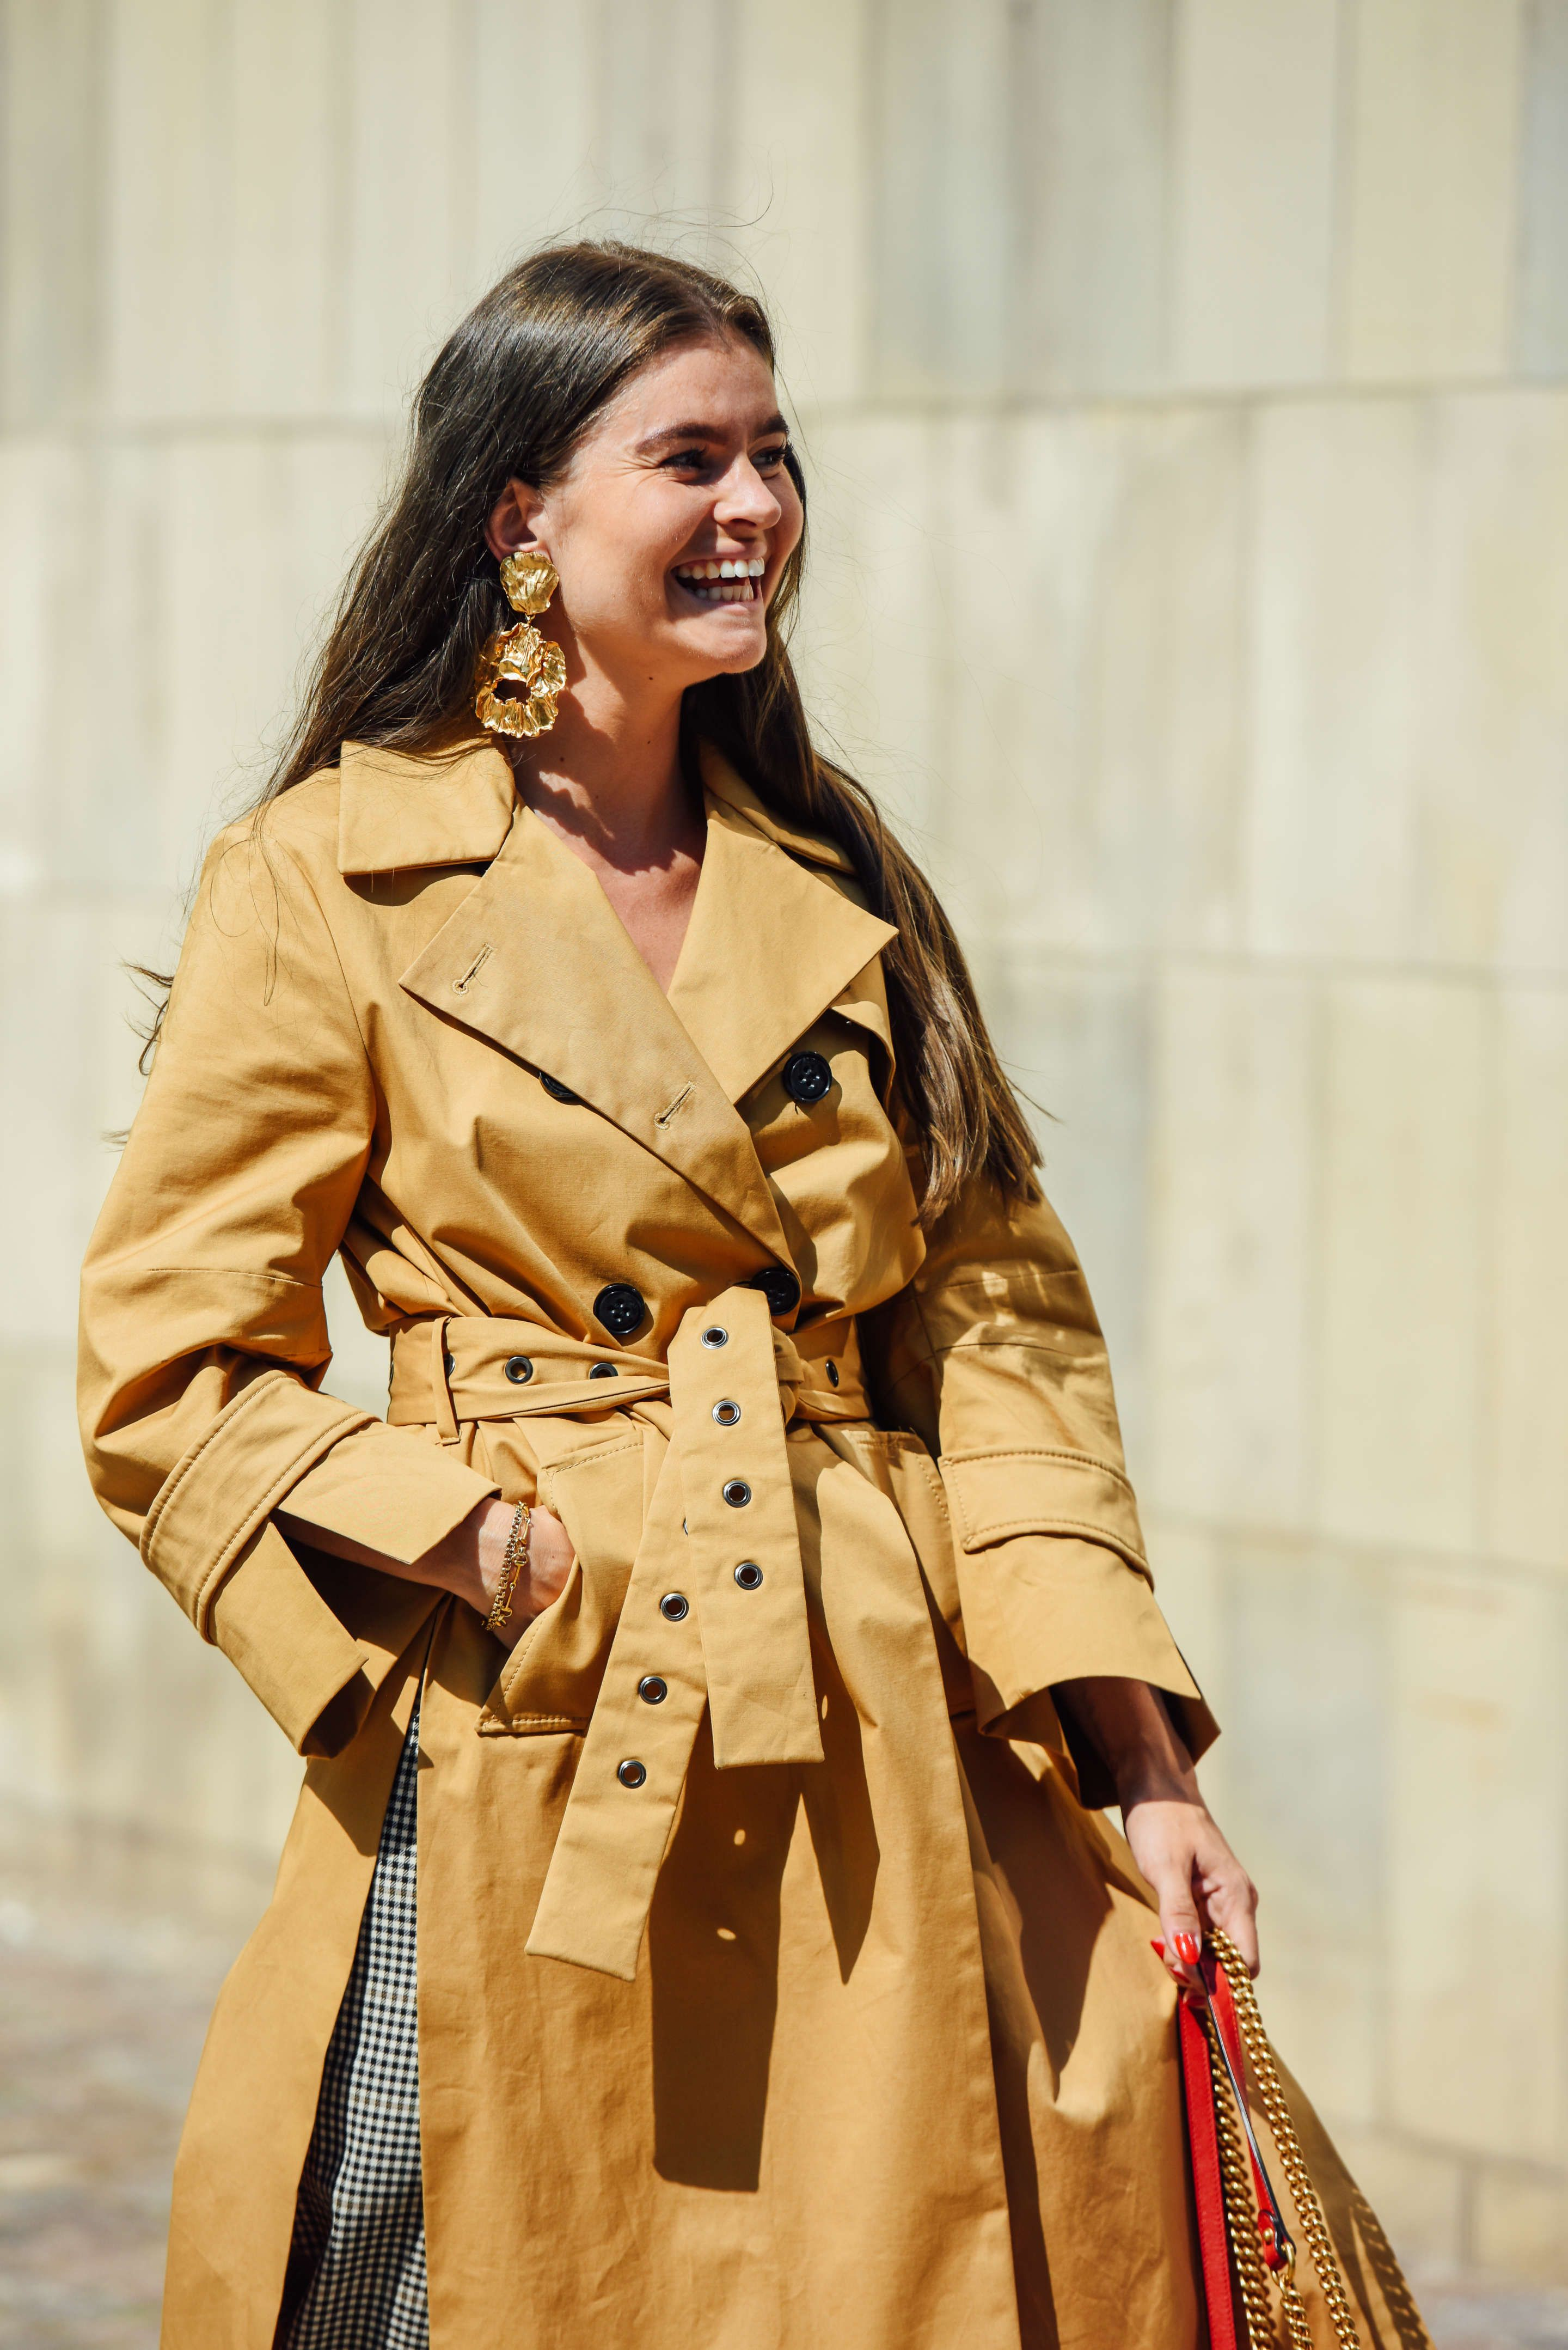 Belted Trench Coat And Statement Earrings Trench Coat Coat Trench Coats Women [ 4315 x 2880 Pixel ]